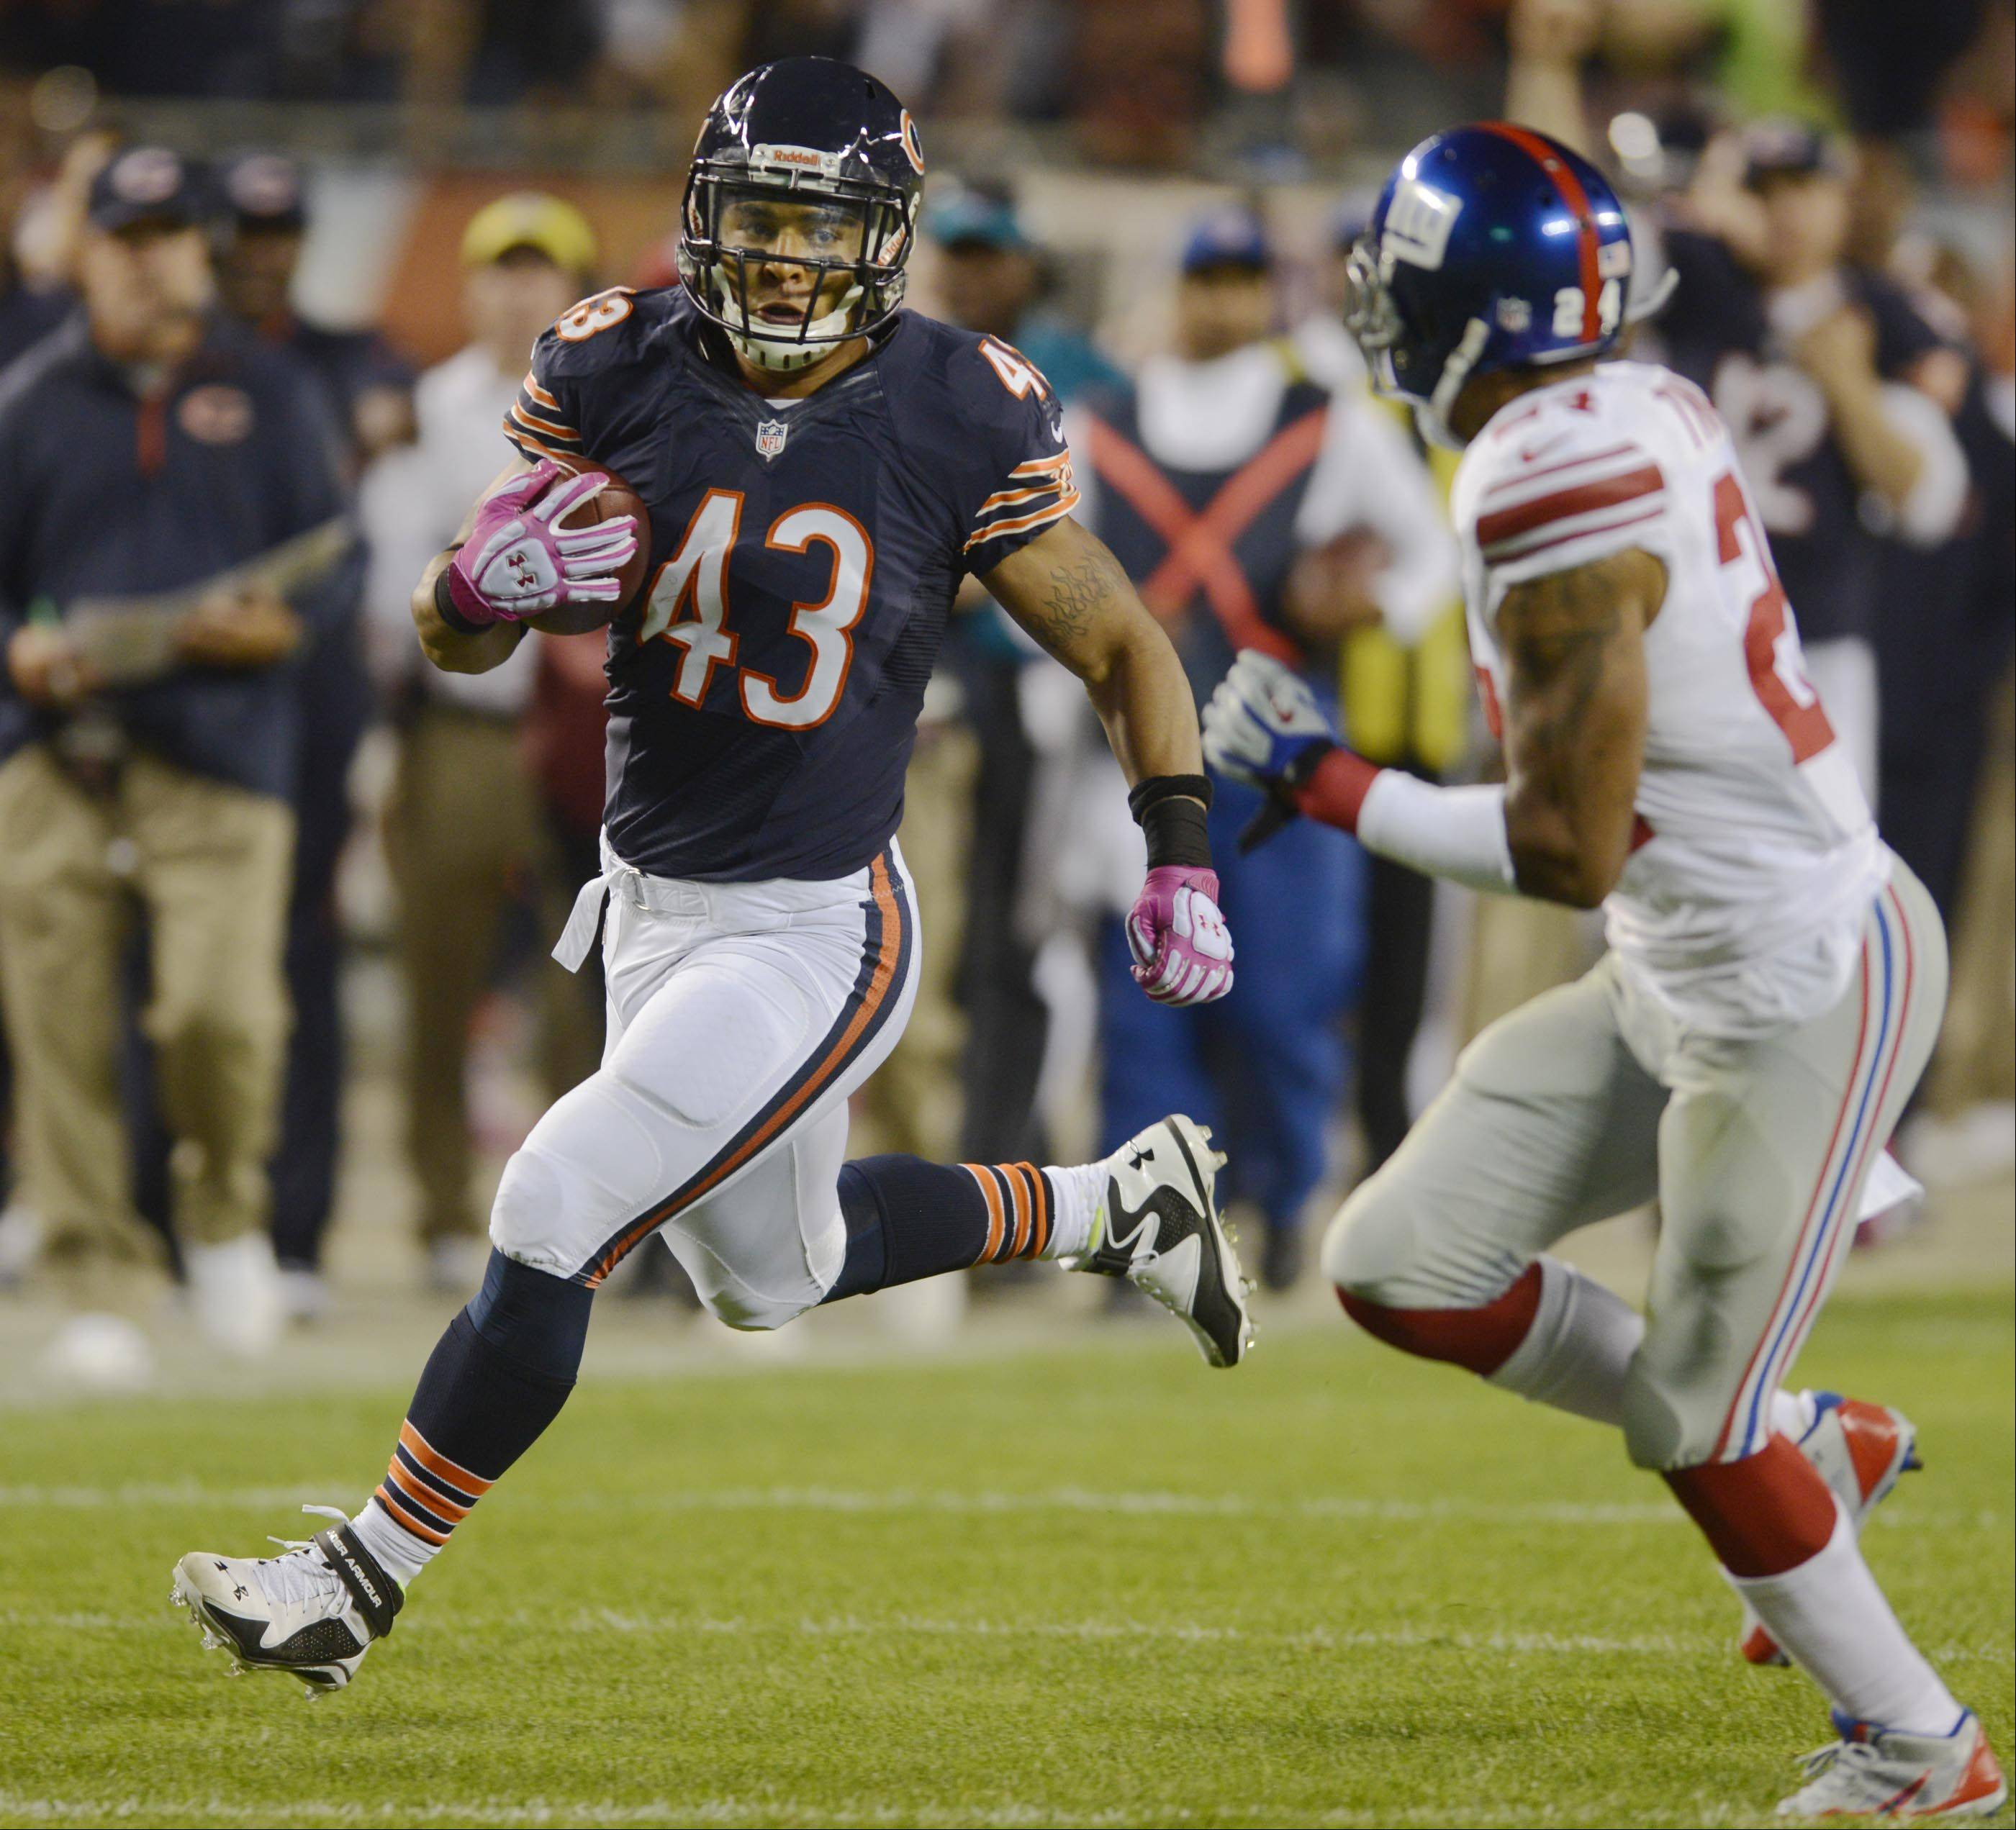 Chicago Bears running back Tony Fiammetta runs a screen pass for big yardage.